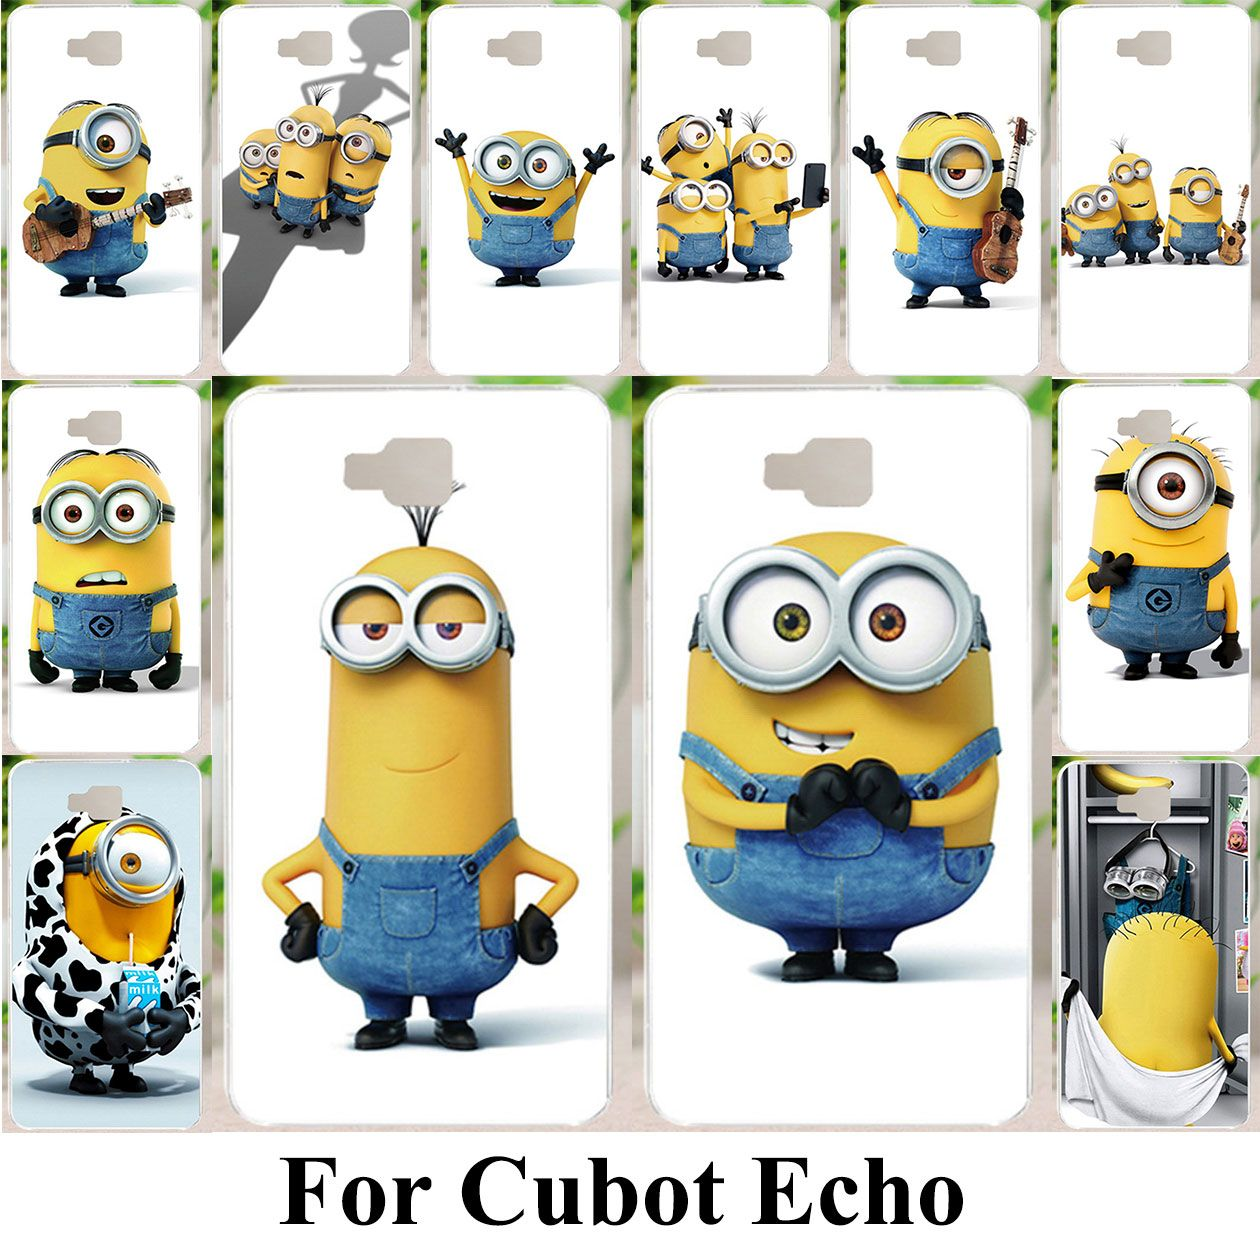 Silicone Phone Case For Cubot Echo Shock Proof Housing Shell Cover Skin Bag Coque For Cubot Echo Yellow Minions Ba Minion Bag Silicone Phone Case Yellow Minion